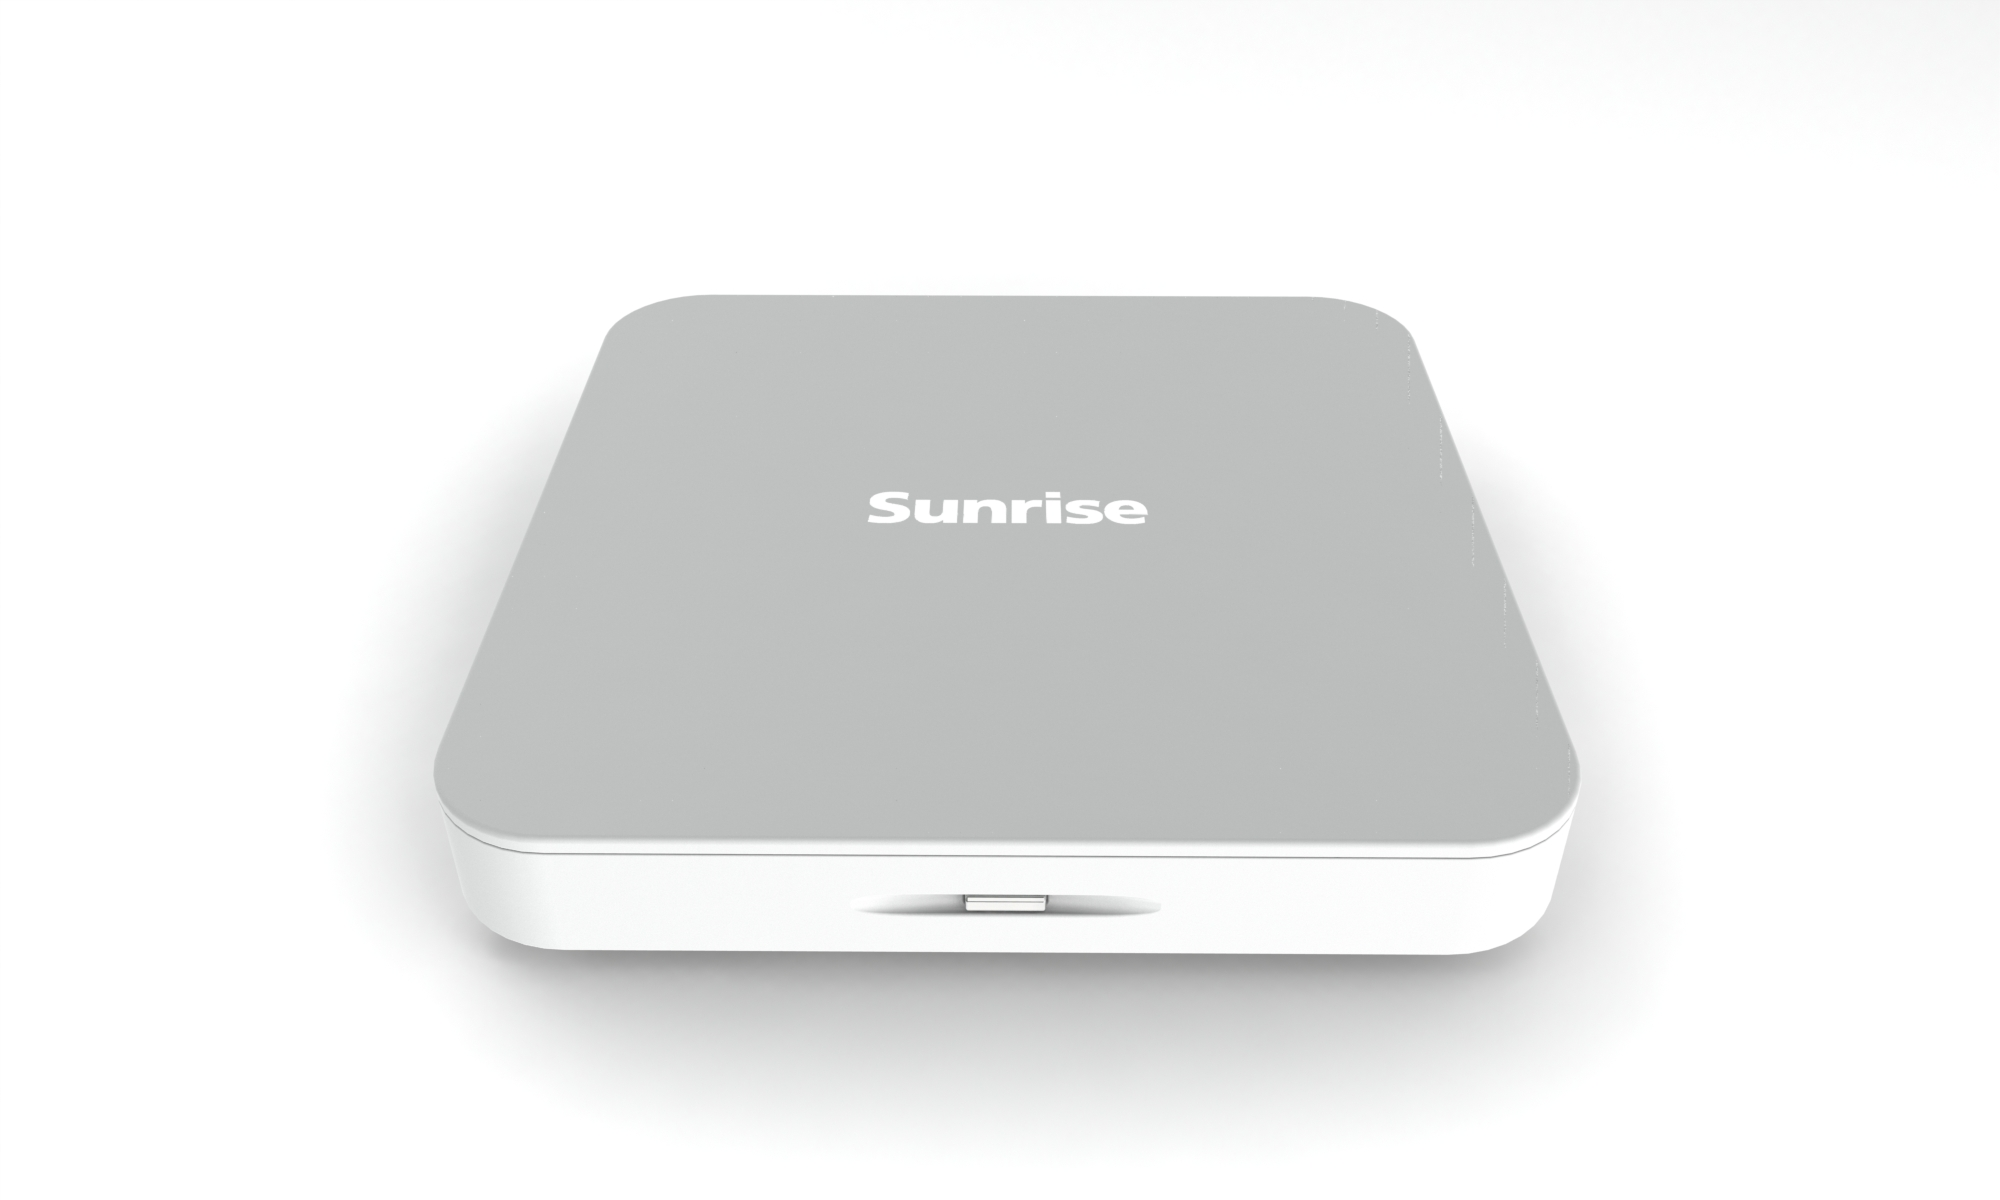 Sunrise TV nouvelle box noire ? Sunrise_neue_Set-Top-Box_96dpi